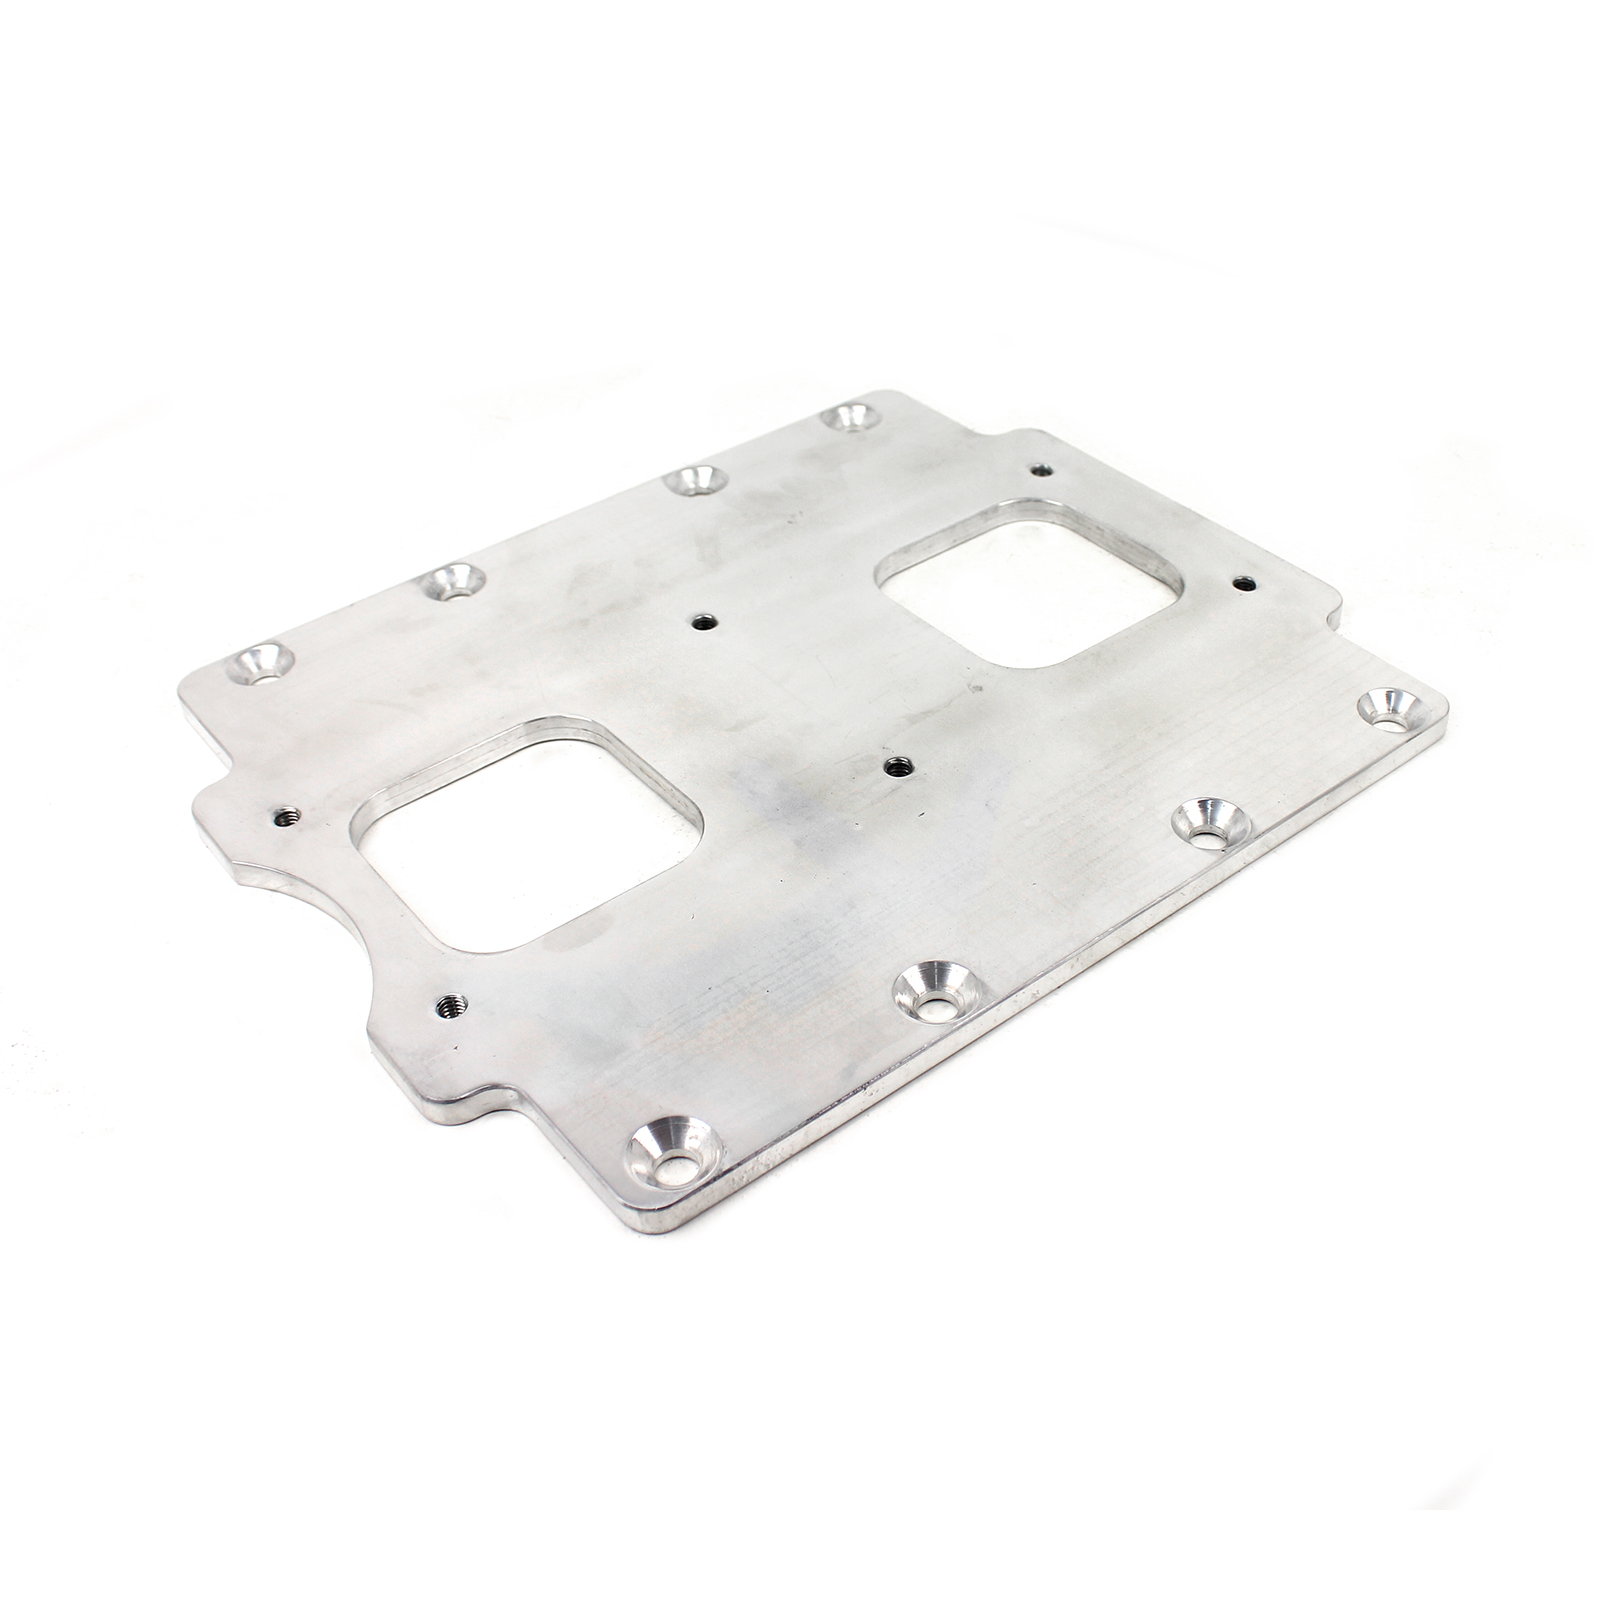 Universal Supercharger Intake Manifold 6/71 to Twin Carburetor Adapter Plate Only